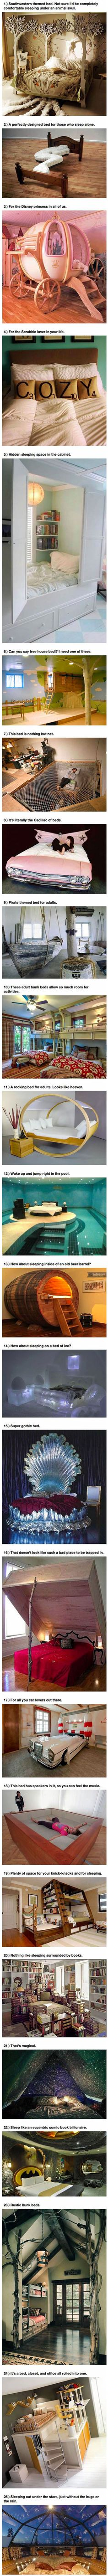 25 amazing beds that will make you wish it was nap time.